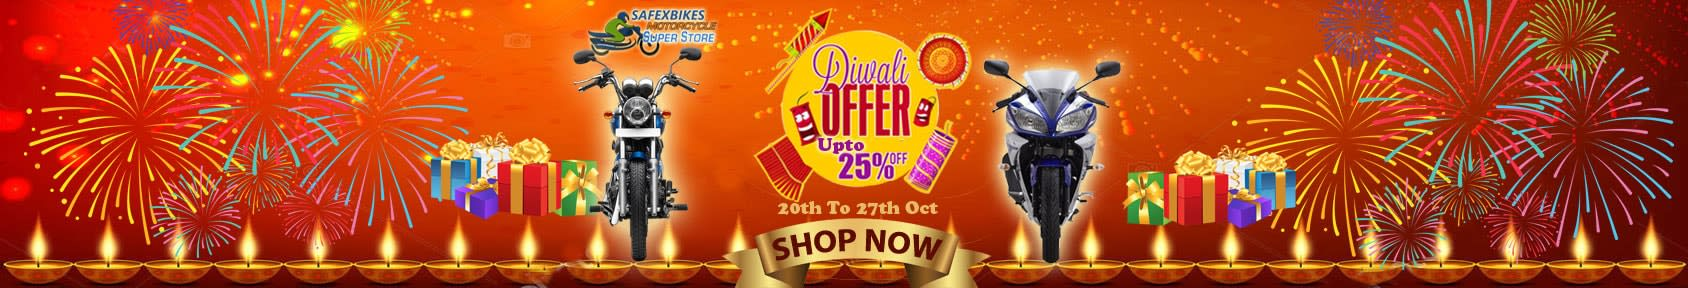 Special offers on Genuine Motorcycle Spare Parts And     Accessories - Diwali Dhamaka